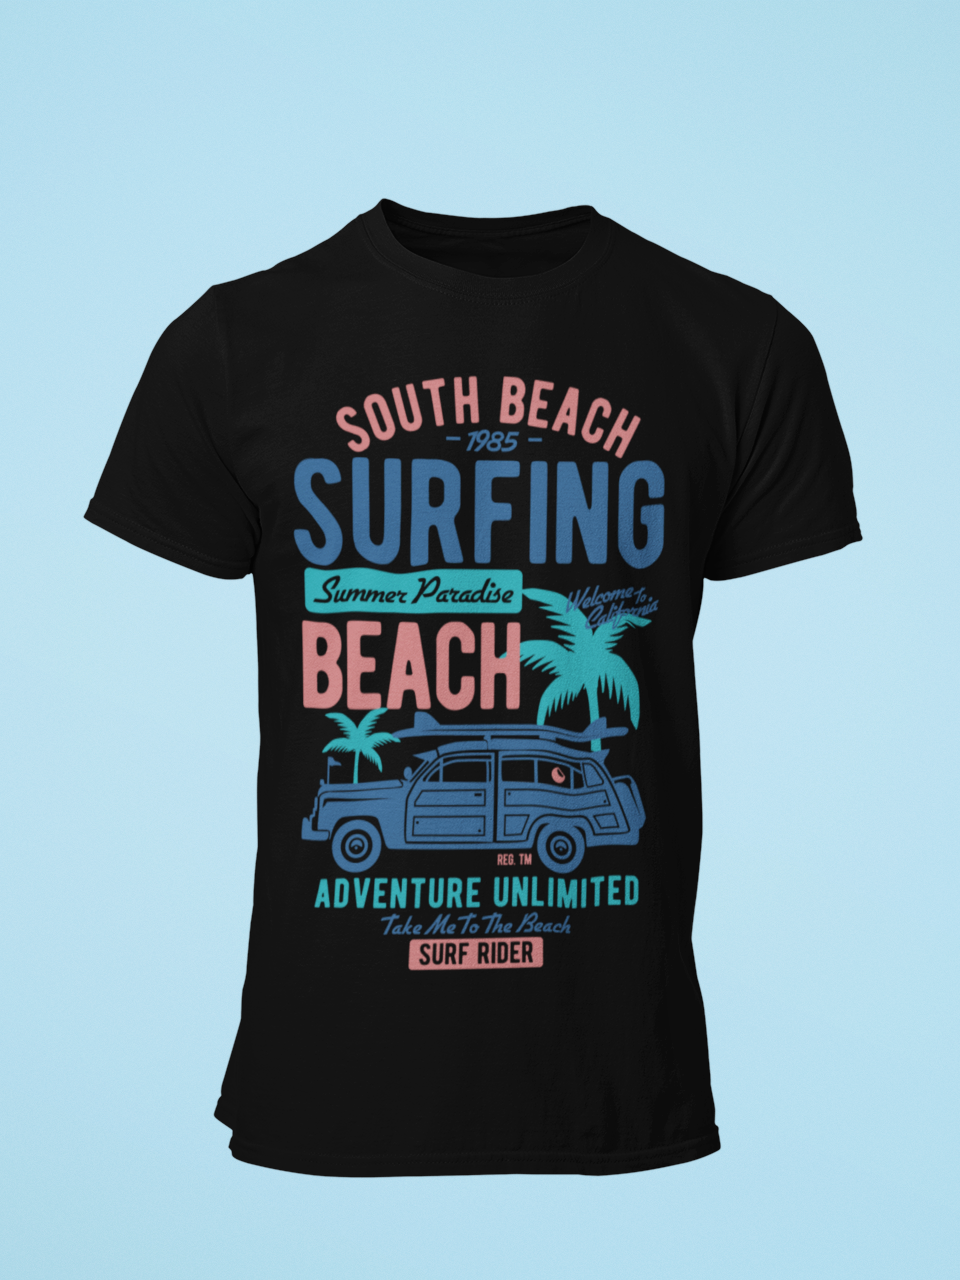 South Beach Surfing - Men's Half Sleeve T-Shirt - Black